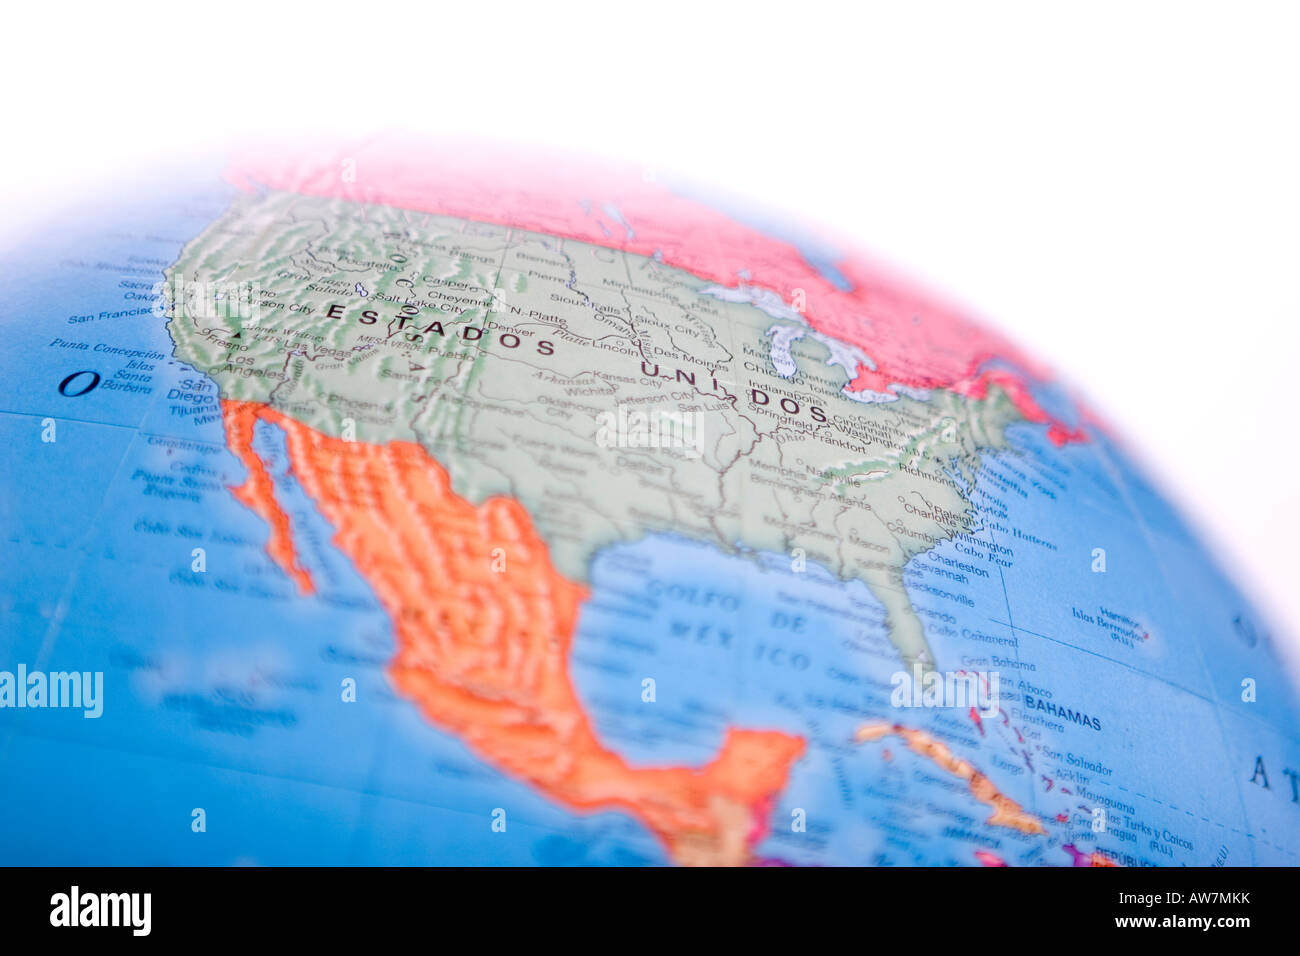 World Globe Map Of North America With Shallow Depth Of Field And - Us map on globe